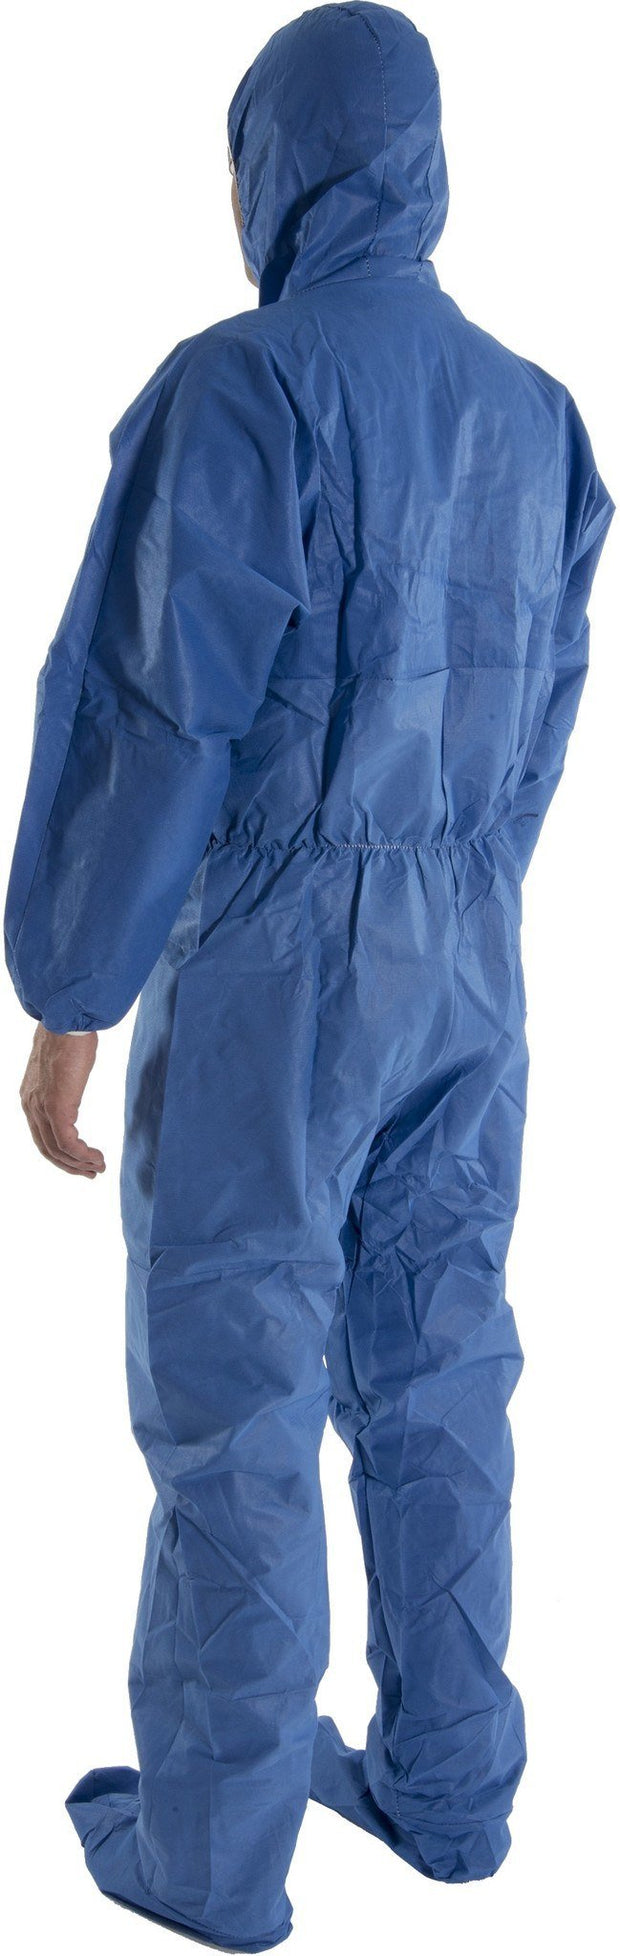 7689d50700d6 Majestic 74-203F FR Flame Resistant SMS Coverall Attached Hood Boots (CASE)